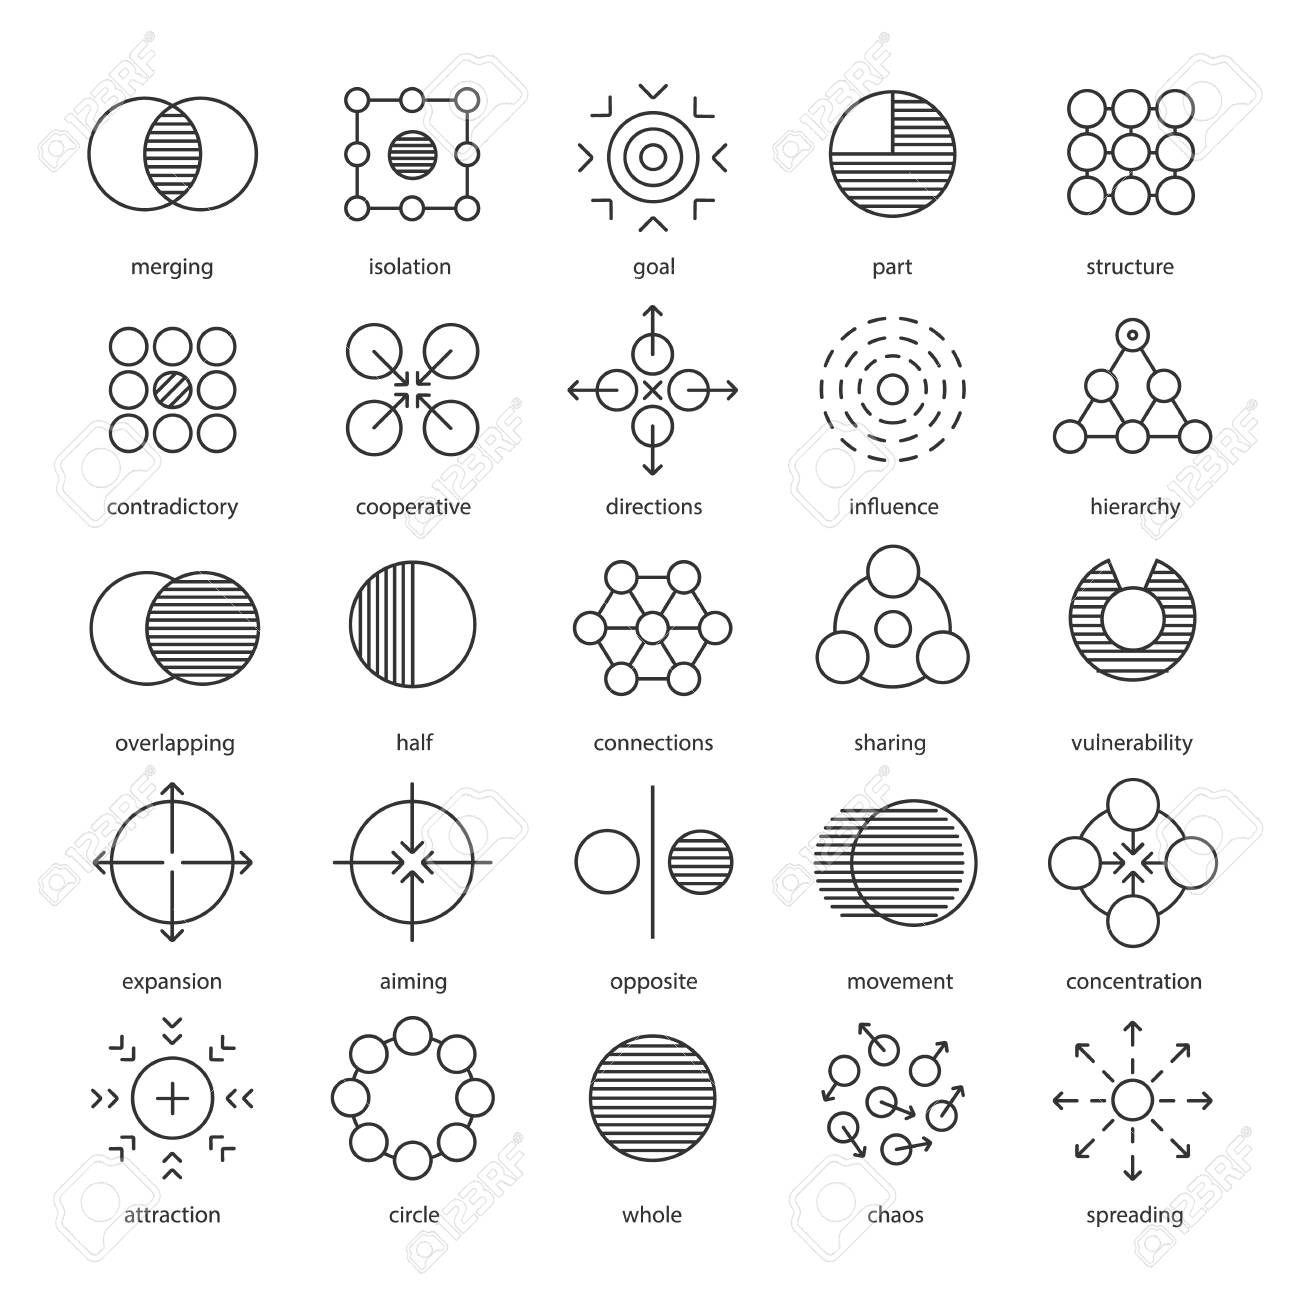 Abstract symbols linear icons set merging vulnerability aiming abstract symbols linear icons set merging vulnerability aiming sharing connections biocorpaavc Image collections